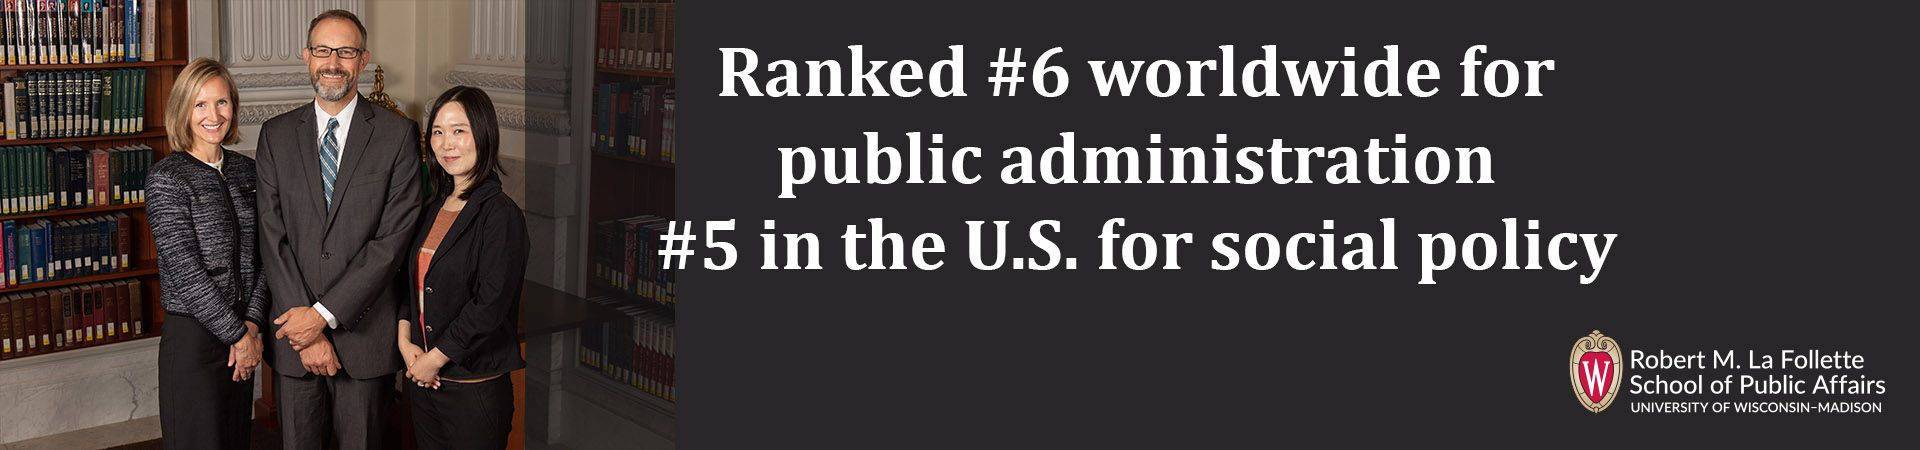 La Follette US News rankings